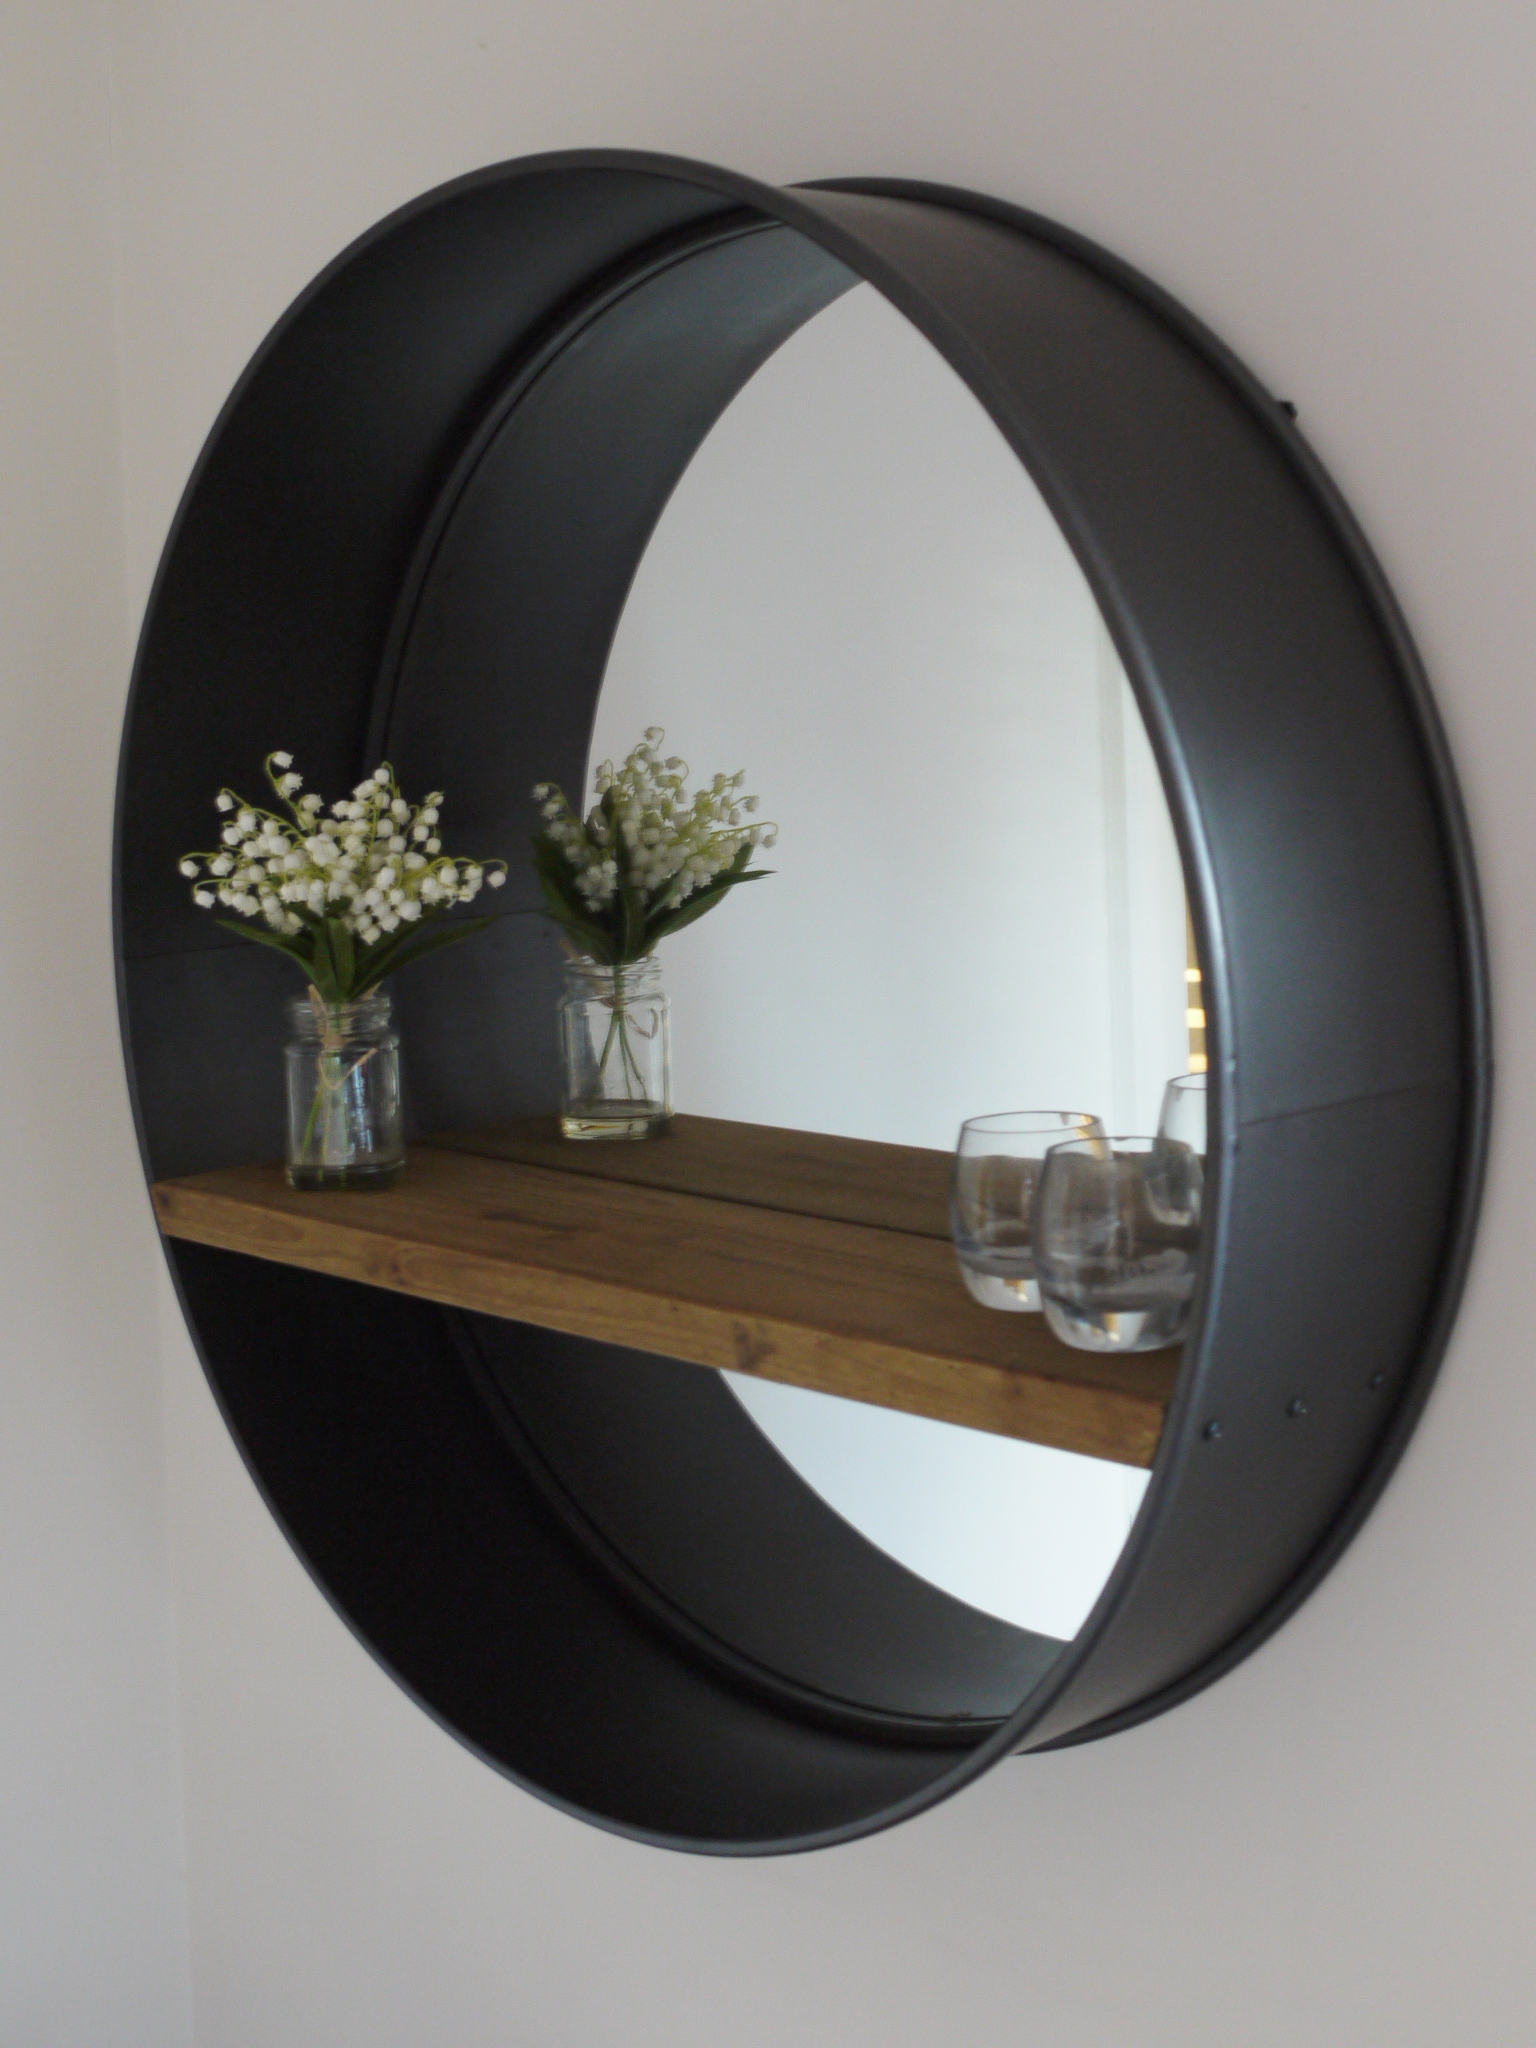 Retro industrial vintage style large round wall mirror for Mirror that look